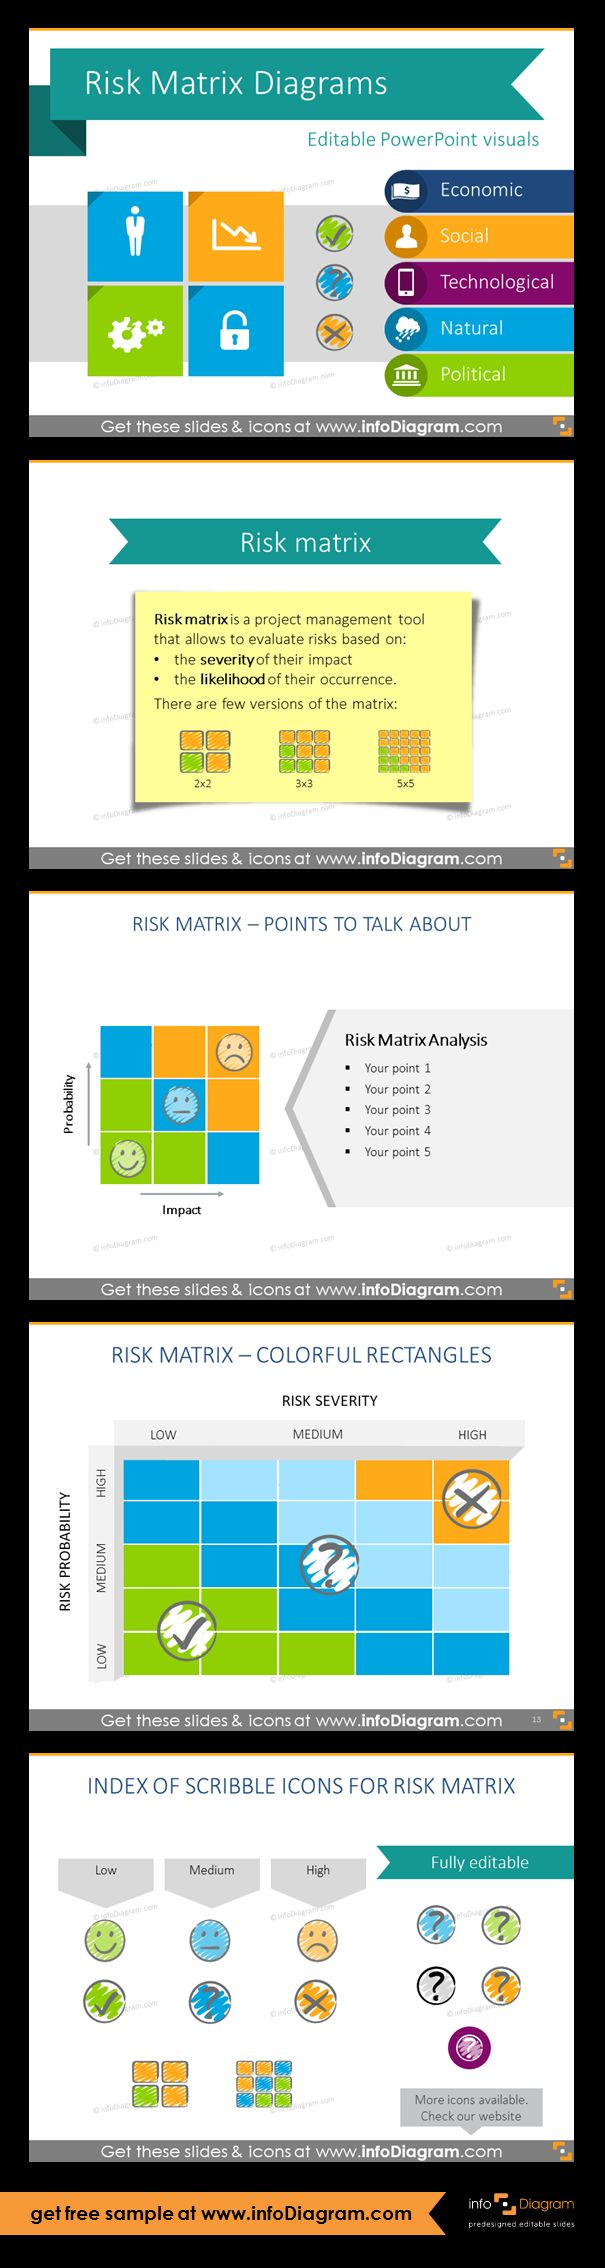 13 matrix PPT slide layouts for expressing Risk levels in two dimensions. This pre-designed PowerPoint visuals can be used to illustrate risk estimation by severity and probability levels. Risk matrix definition; colorful matrix version with scribble icons; risk matrix with place for additional text; hand drawn icons set. Risk matrix diagrams are used for business, education, and webinars.